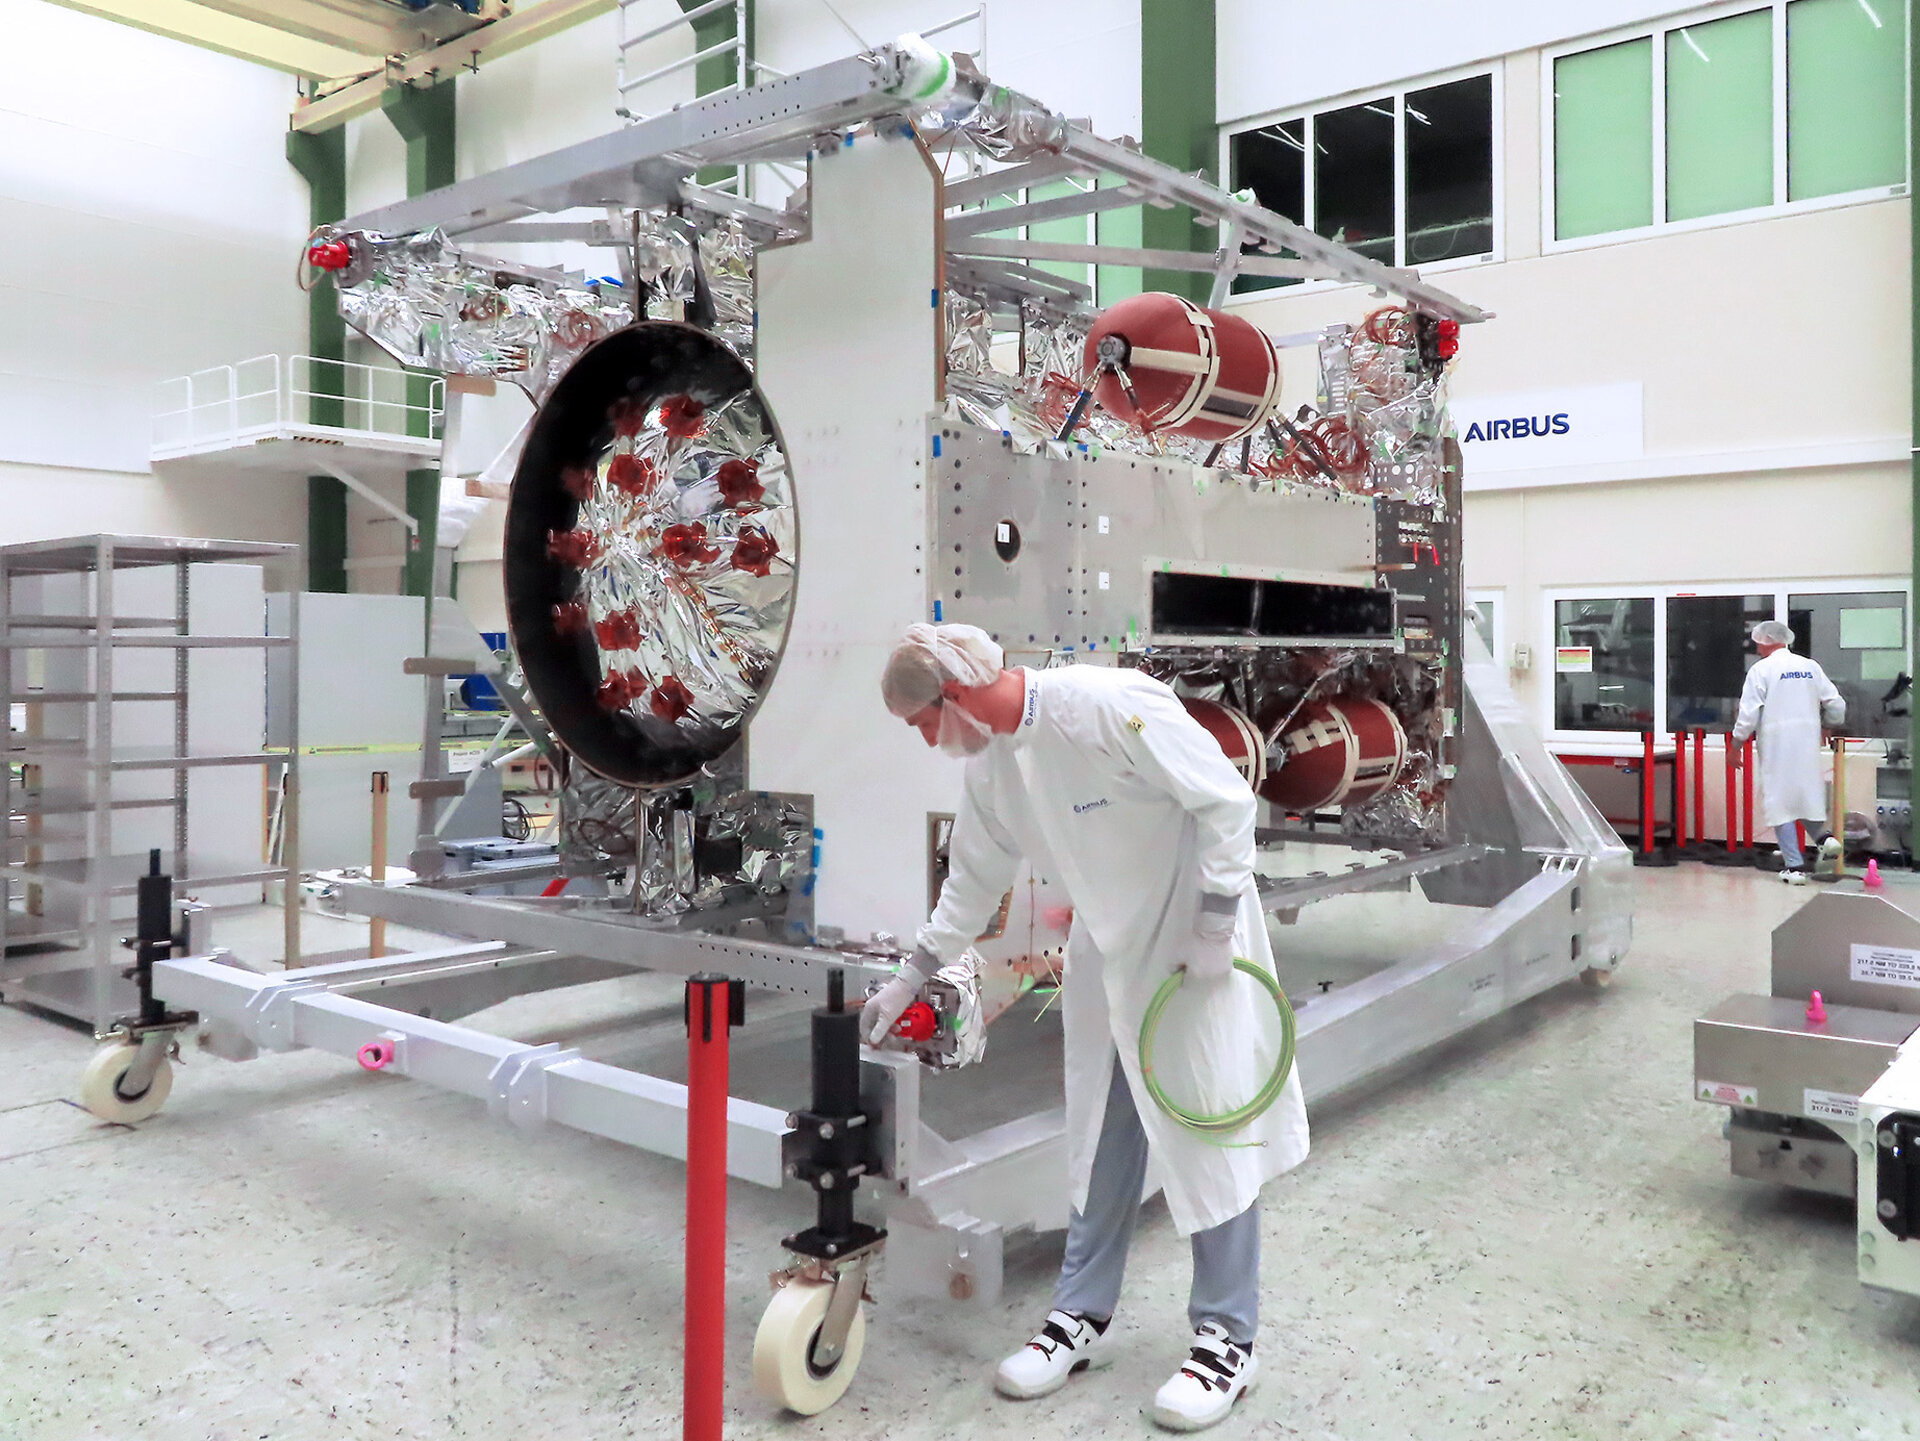 ESA's Jupiter explorer Juice at Airbus facilities in Friedrichshafen ready for final integration